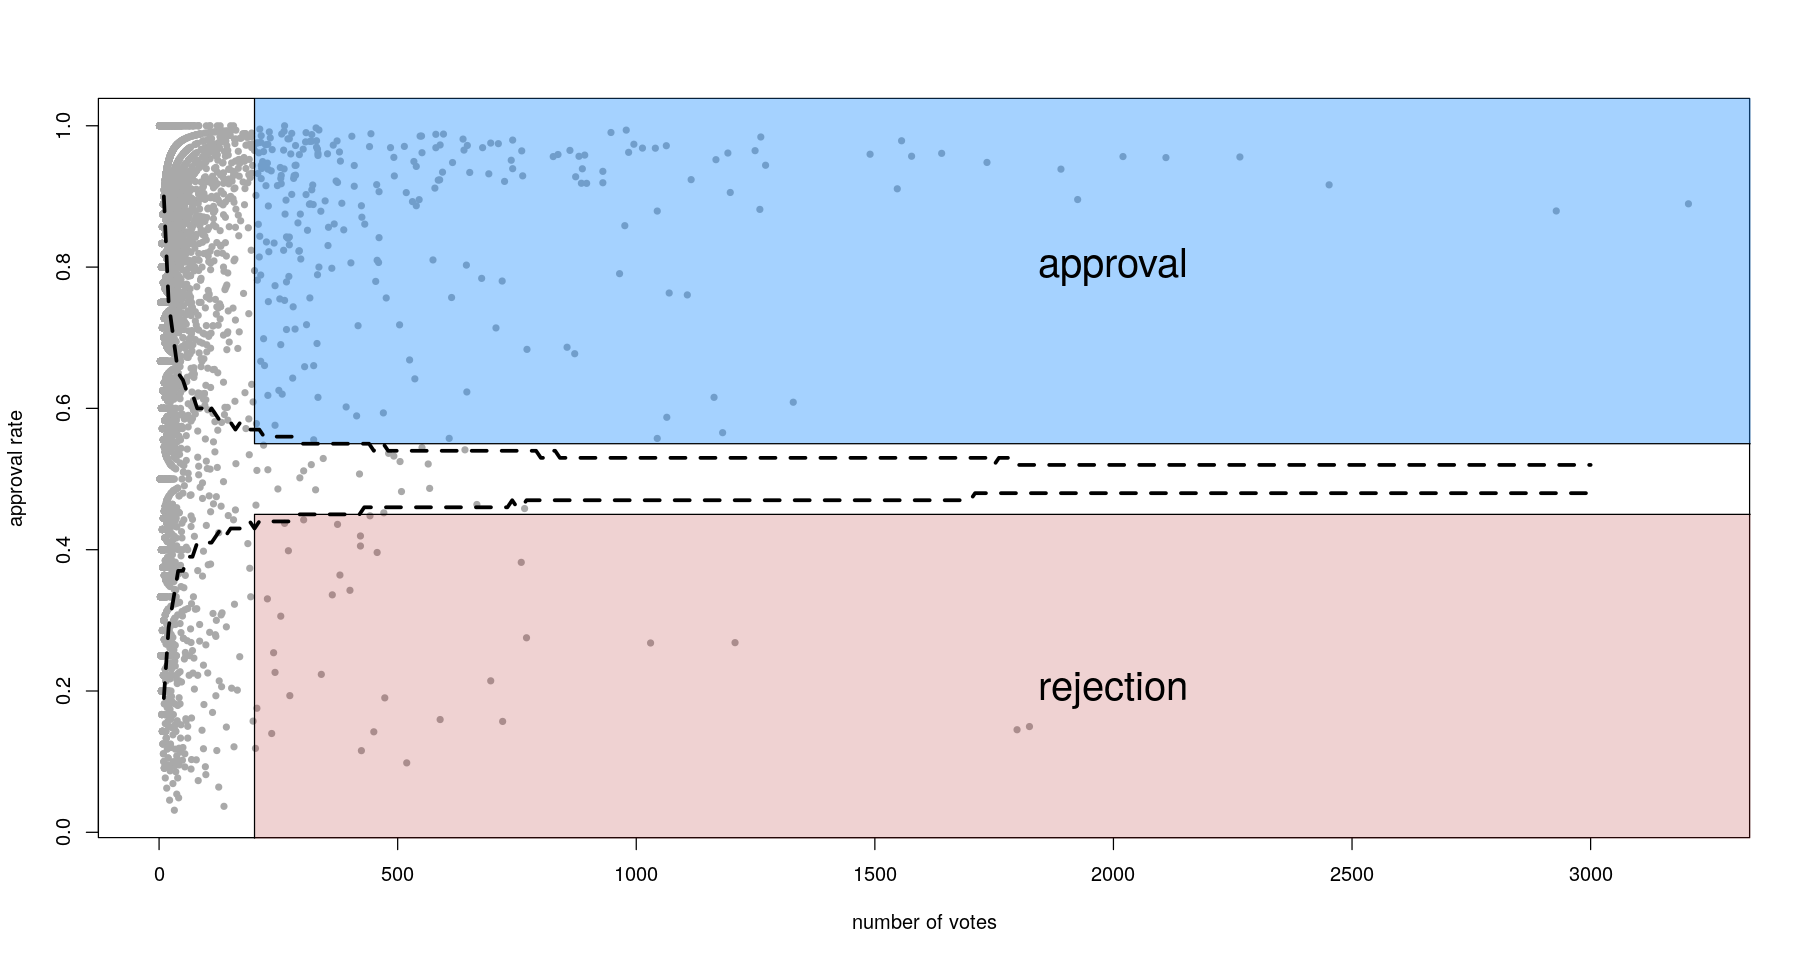 For most proposals, there is enough statistical power to determine approval or rejection. Dashed lines represent significance in a one-sided proportion test vs 50%.